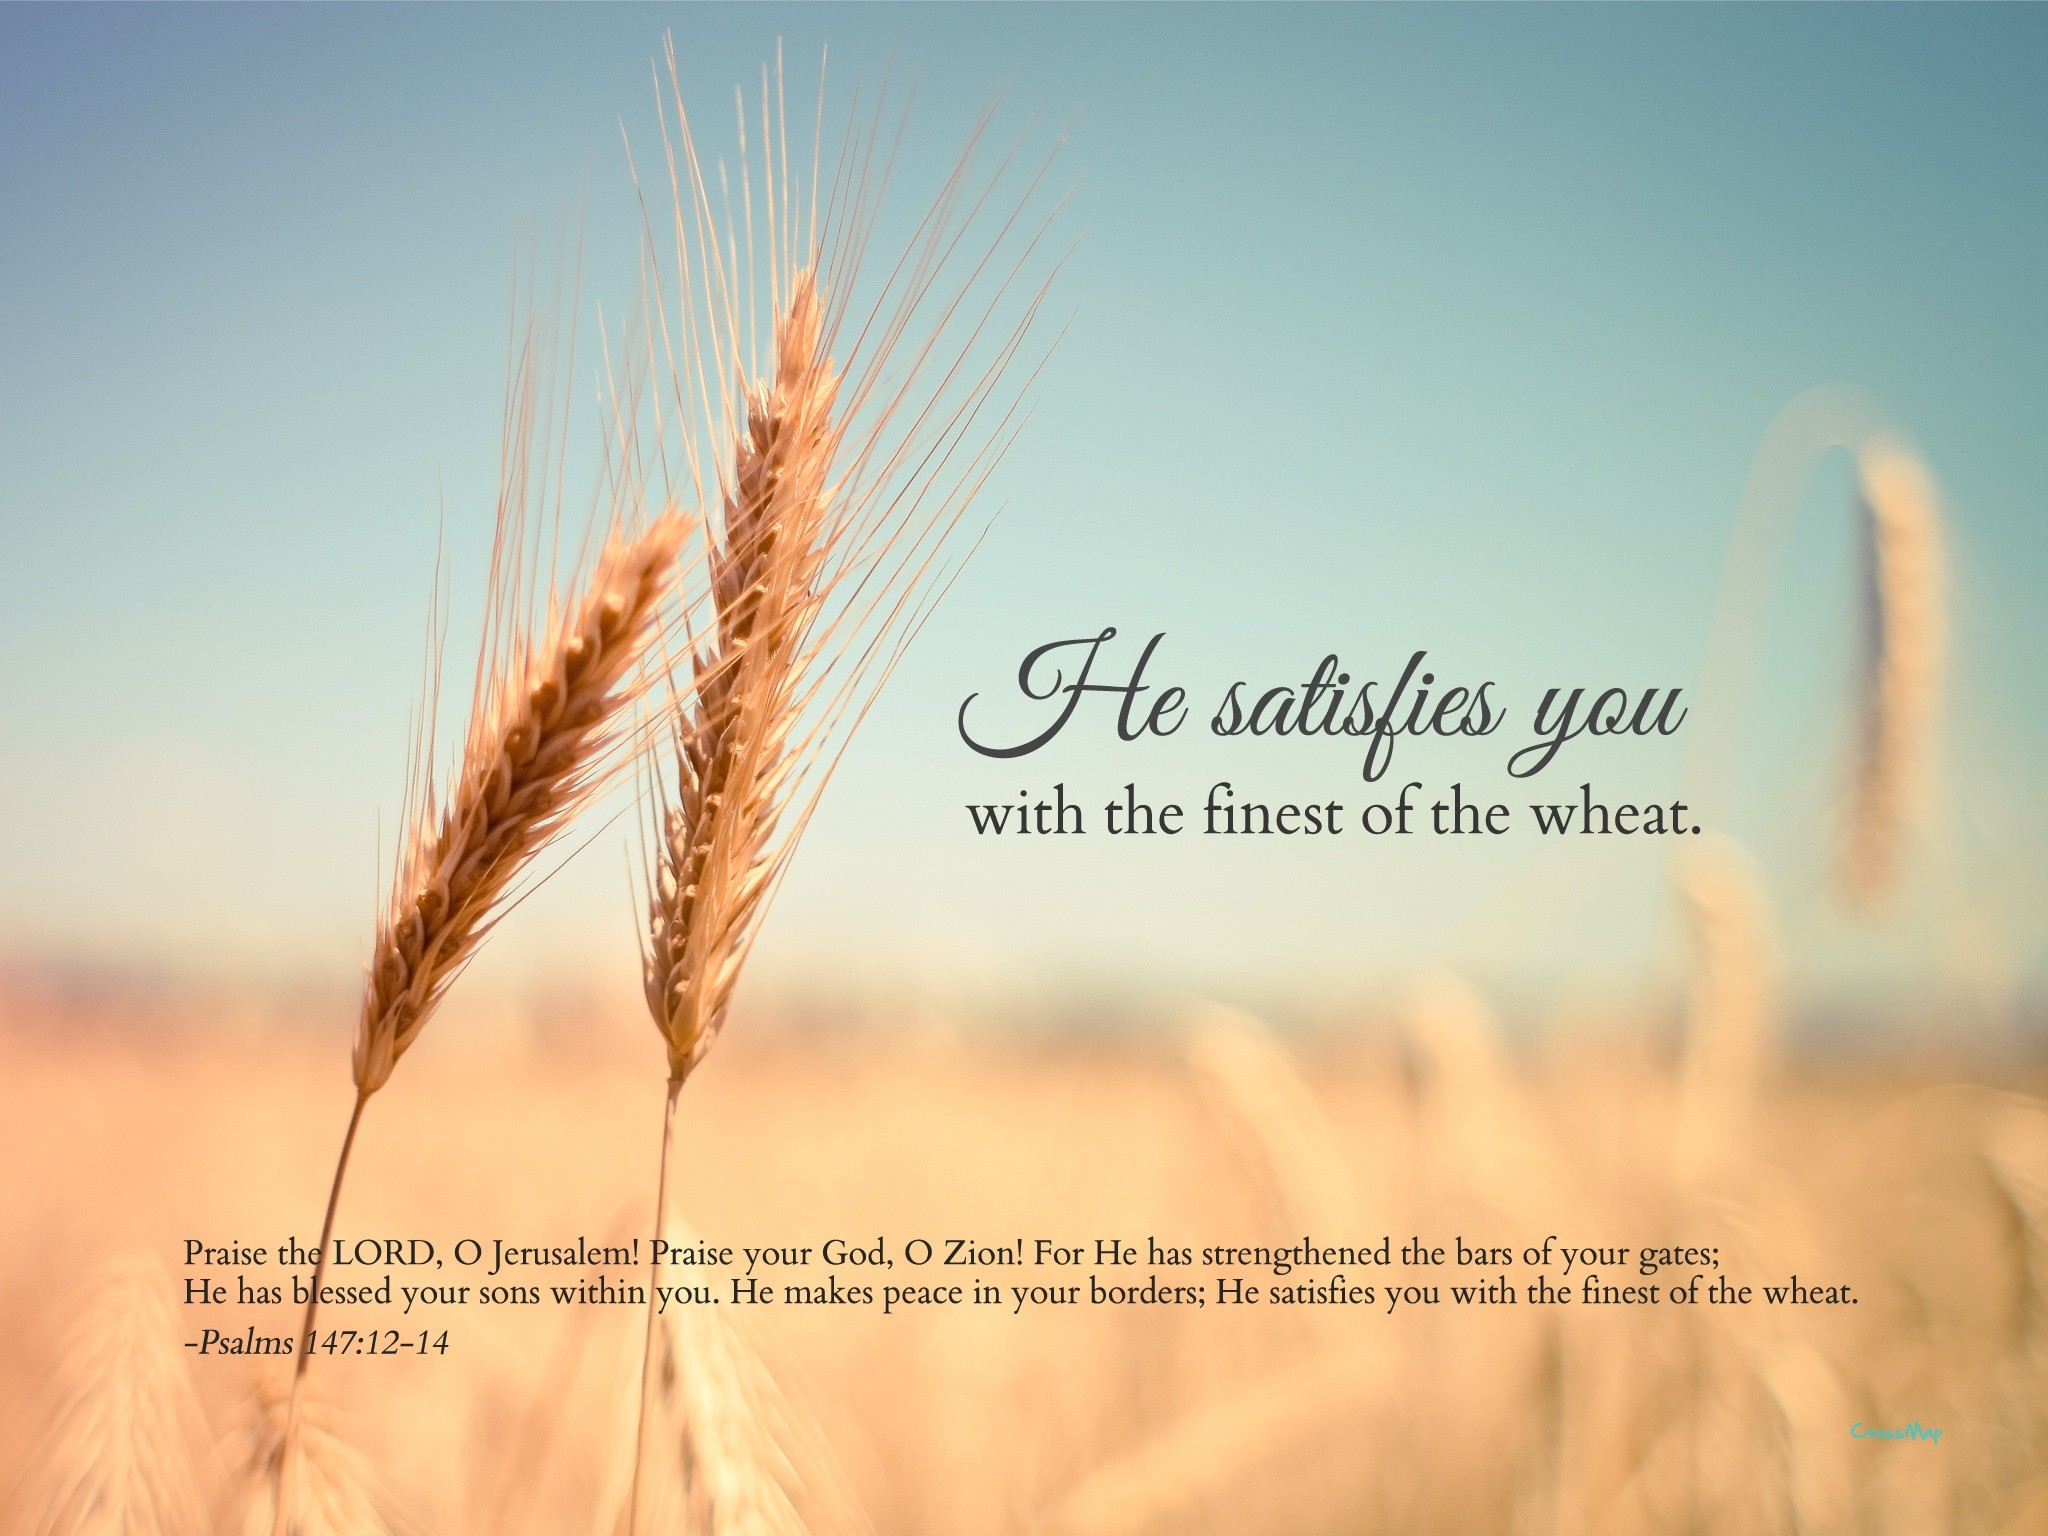 He Satisfies You | Christian Photographs | Crossmap Christian Backgrounds  and Christian Wallpaper